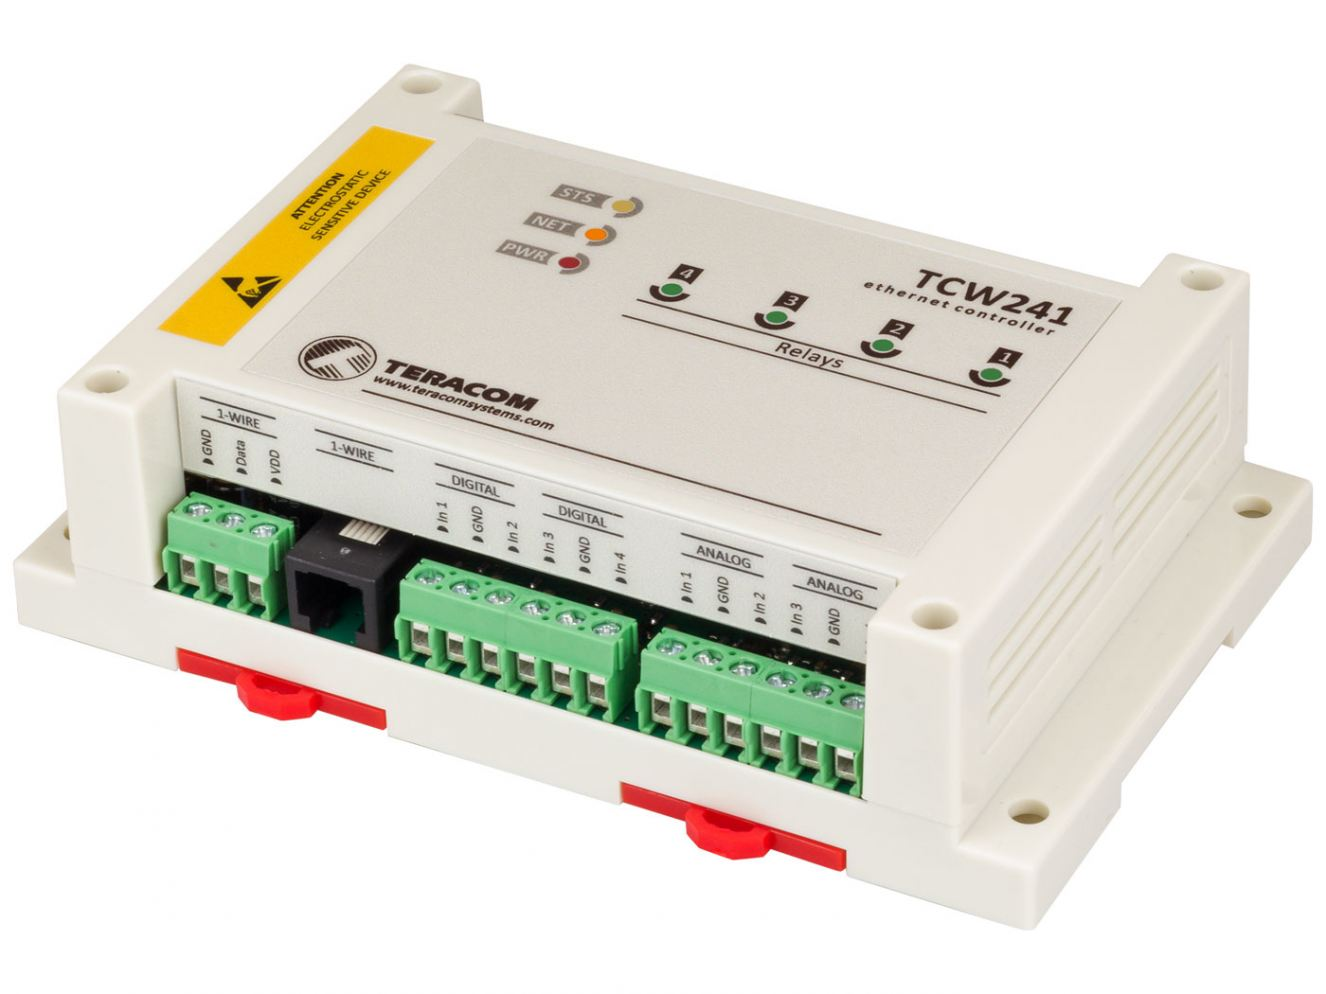 Teracom TCW241 for Factory Automation & Industrial